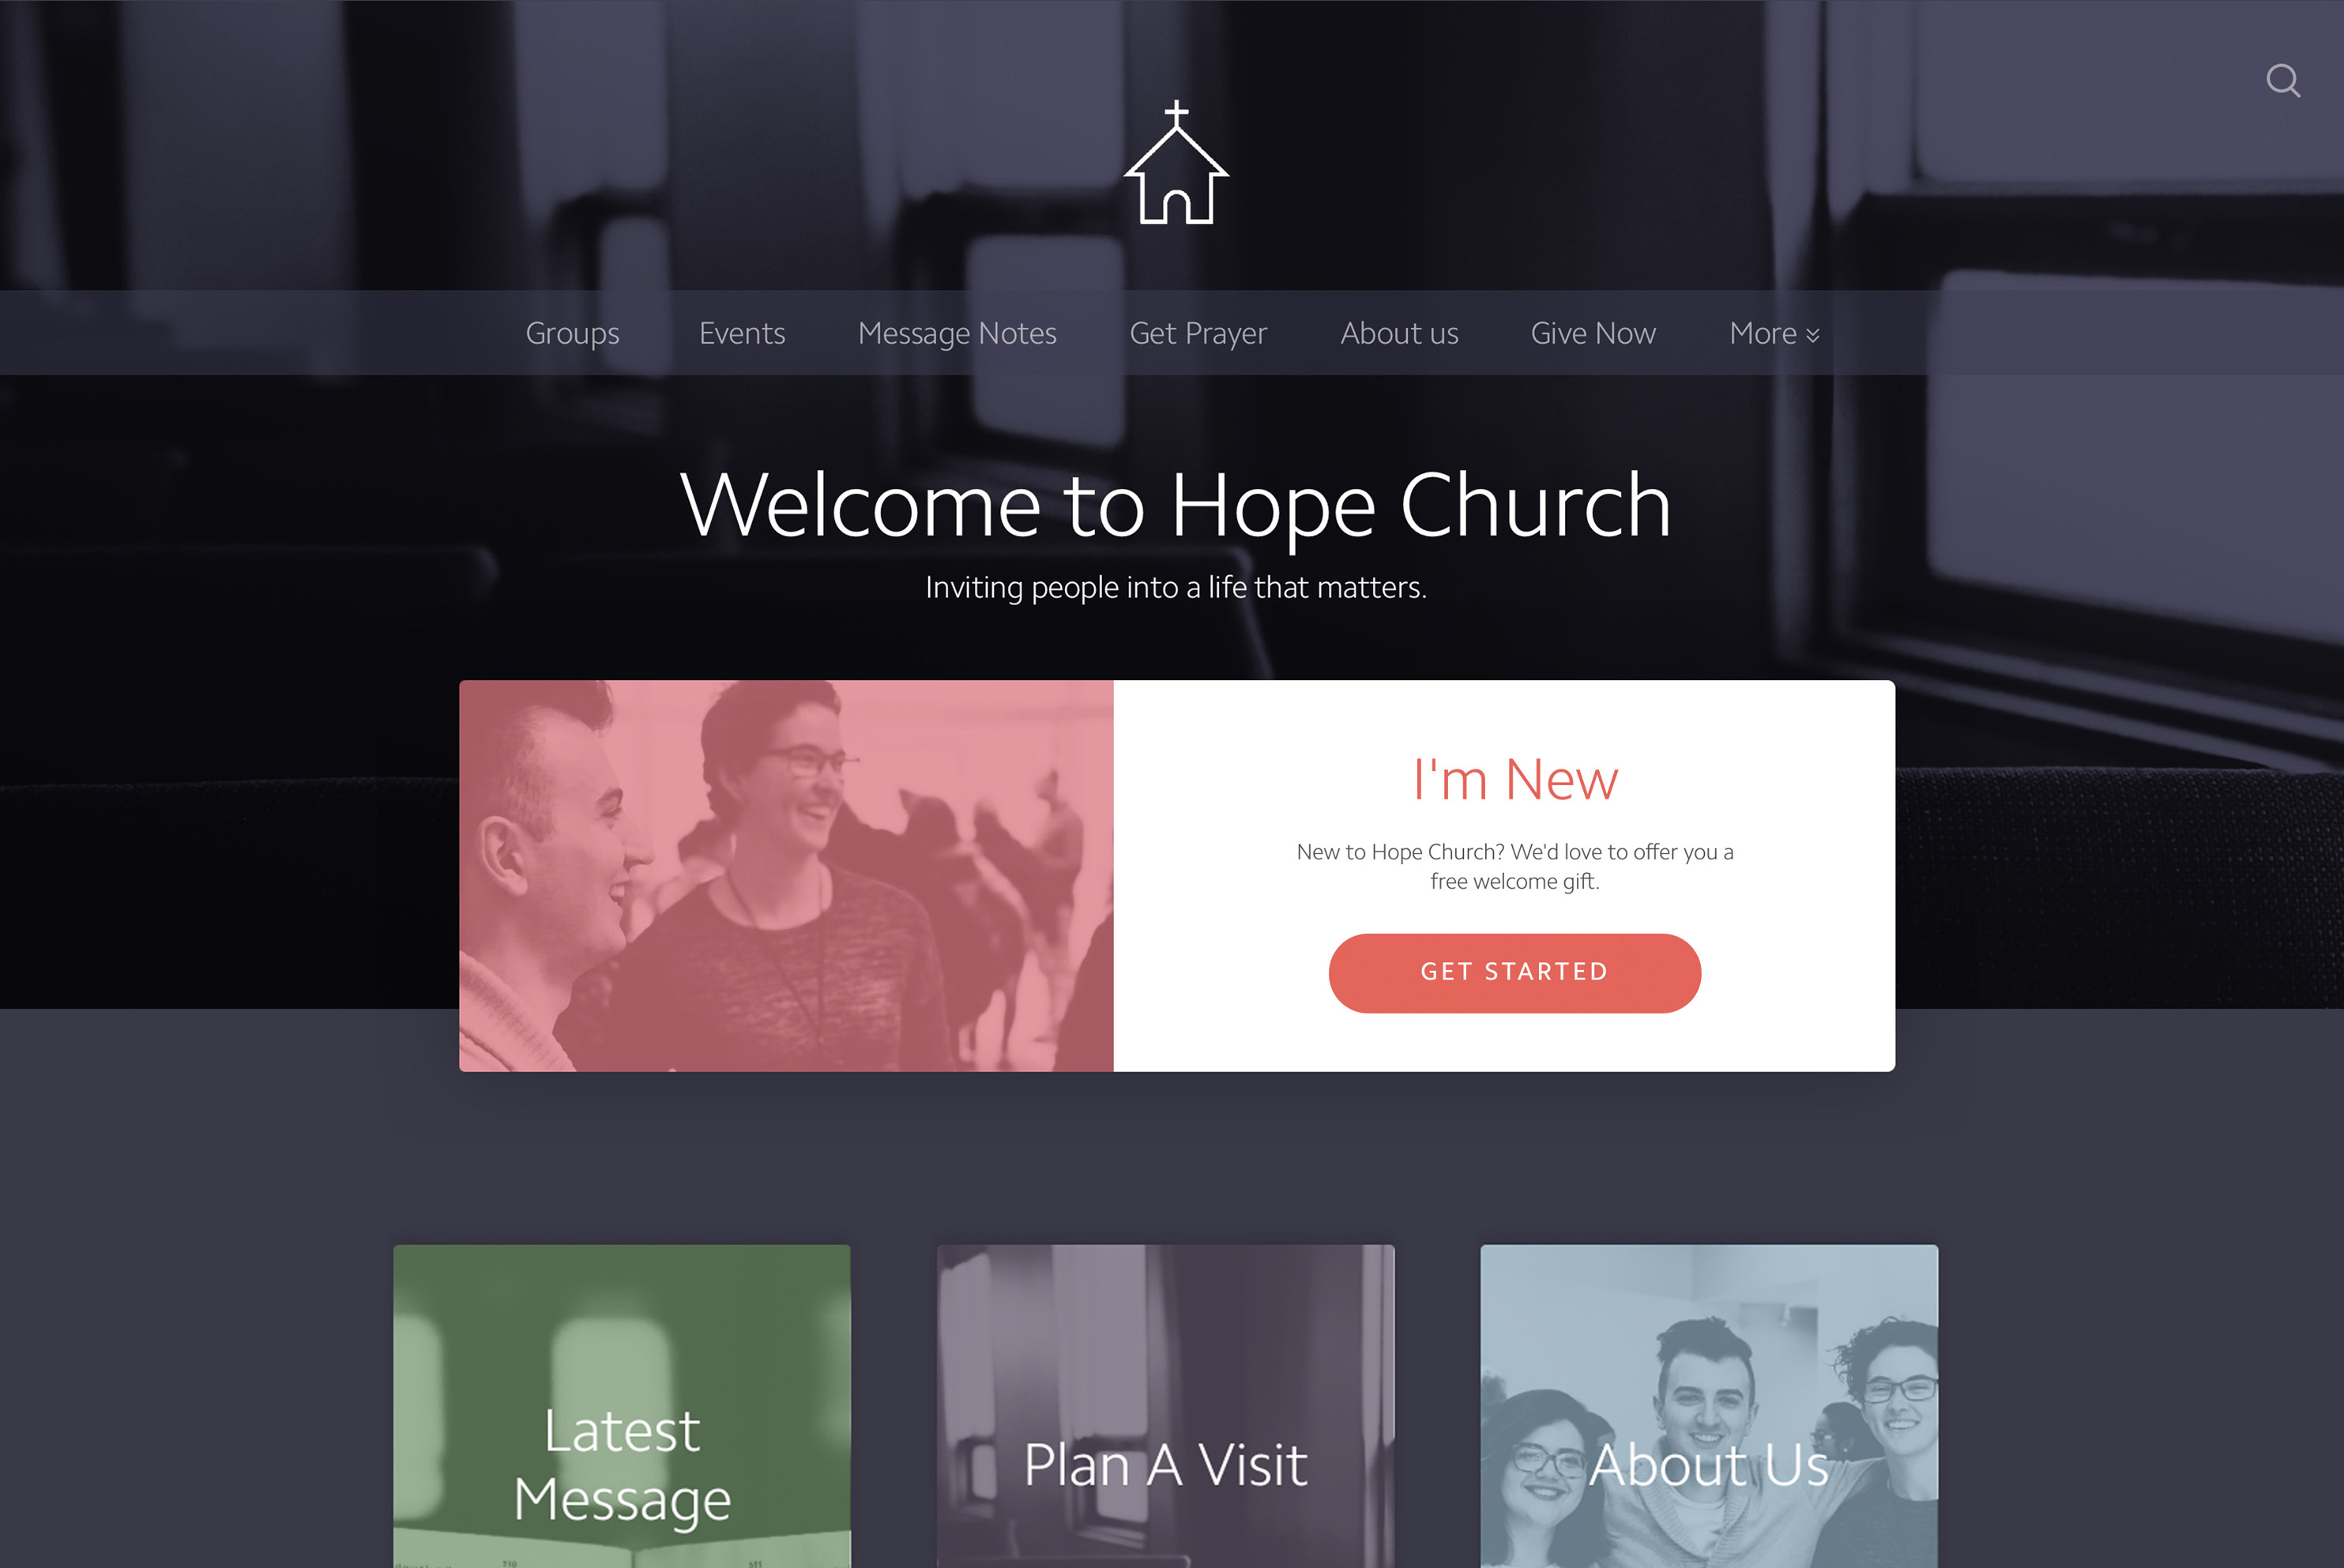 A Nucleus church website design [DARK THEME] built using photos taken on an iPhone using portrait mode